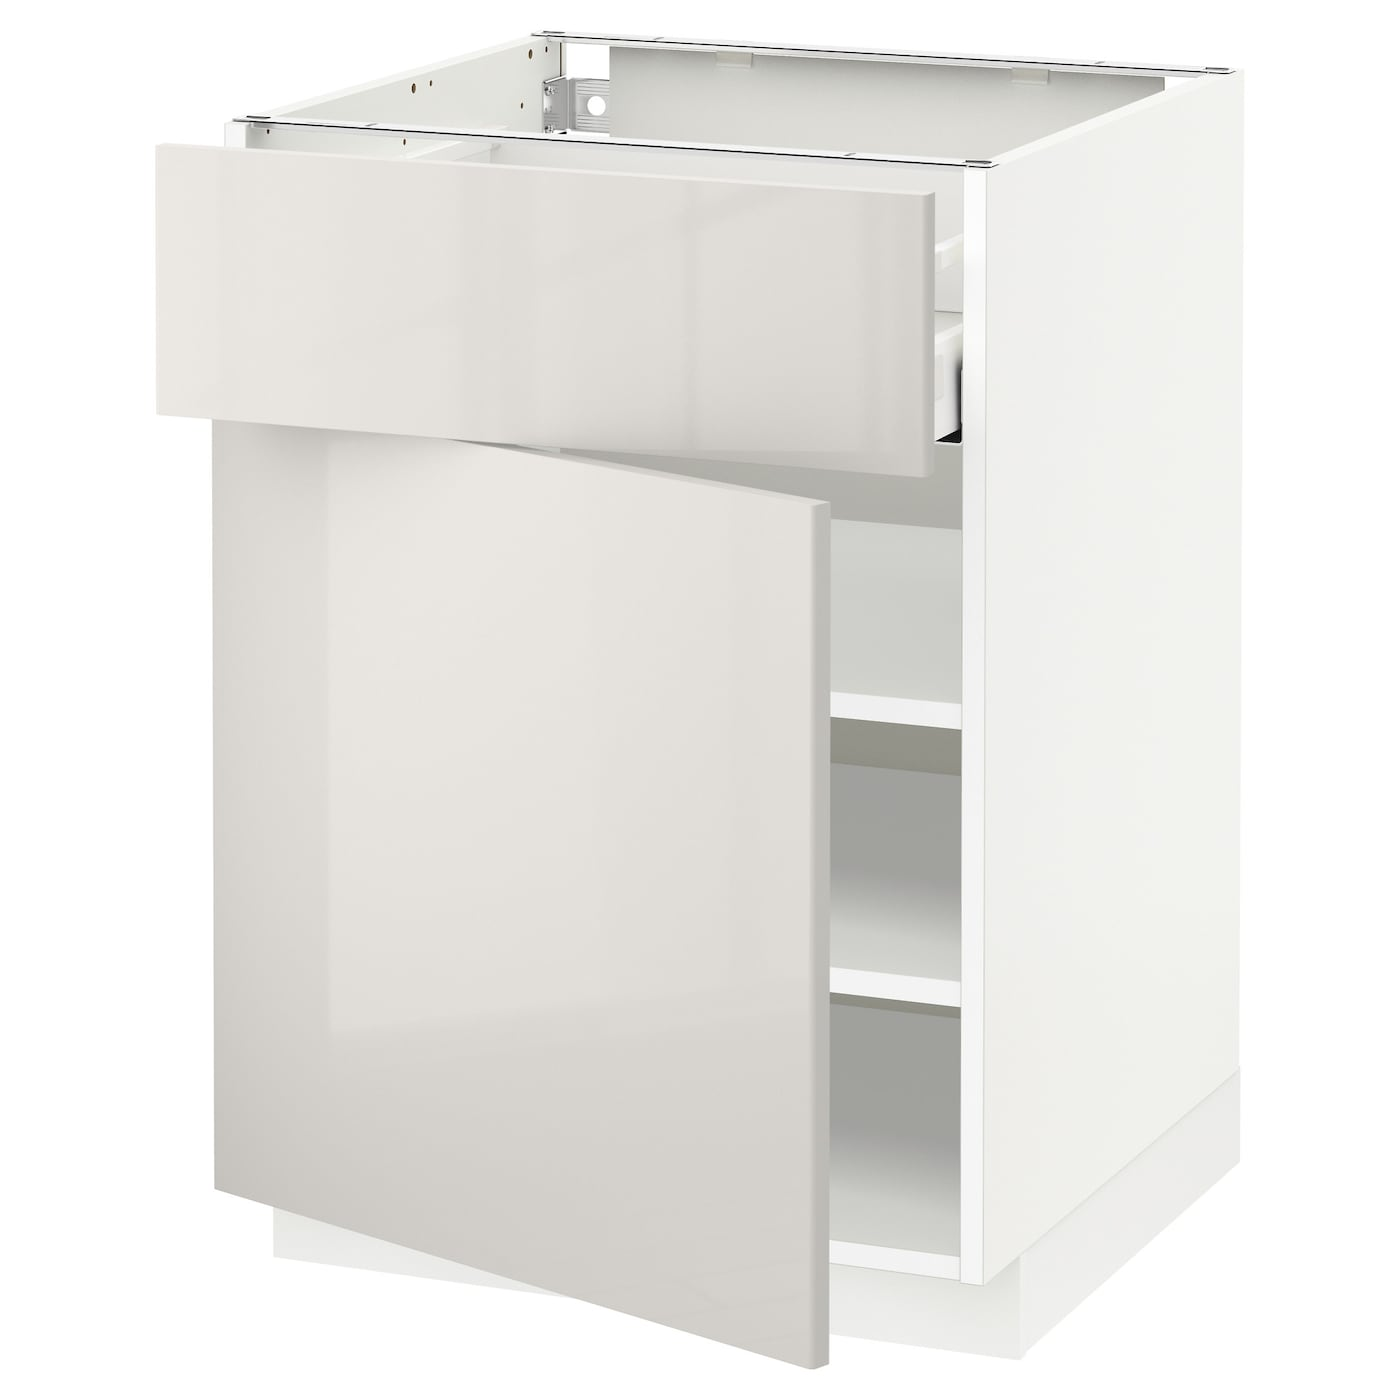 Ikea Kitchen Cabinet Lighting: METOD/MAXIMERA Base Cabinet With Drawer/door White